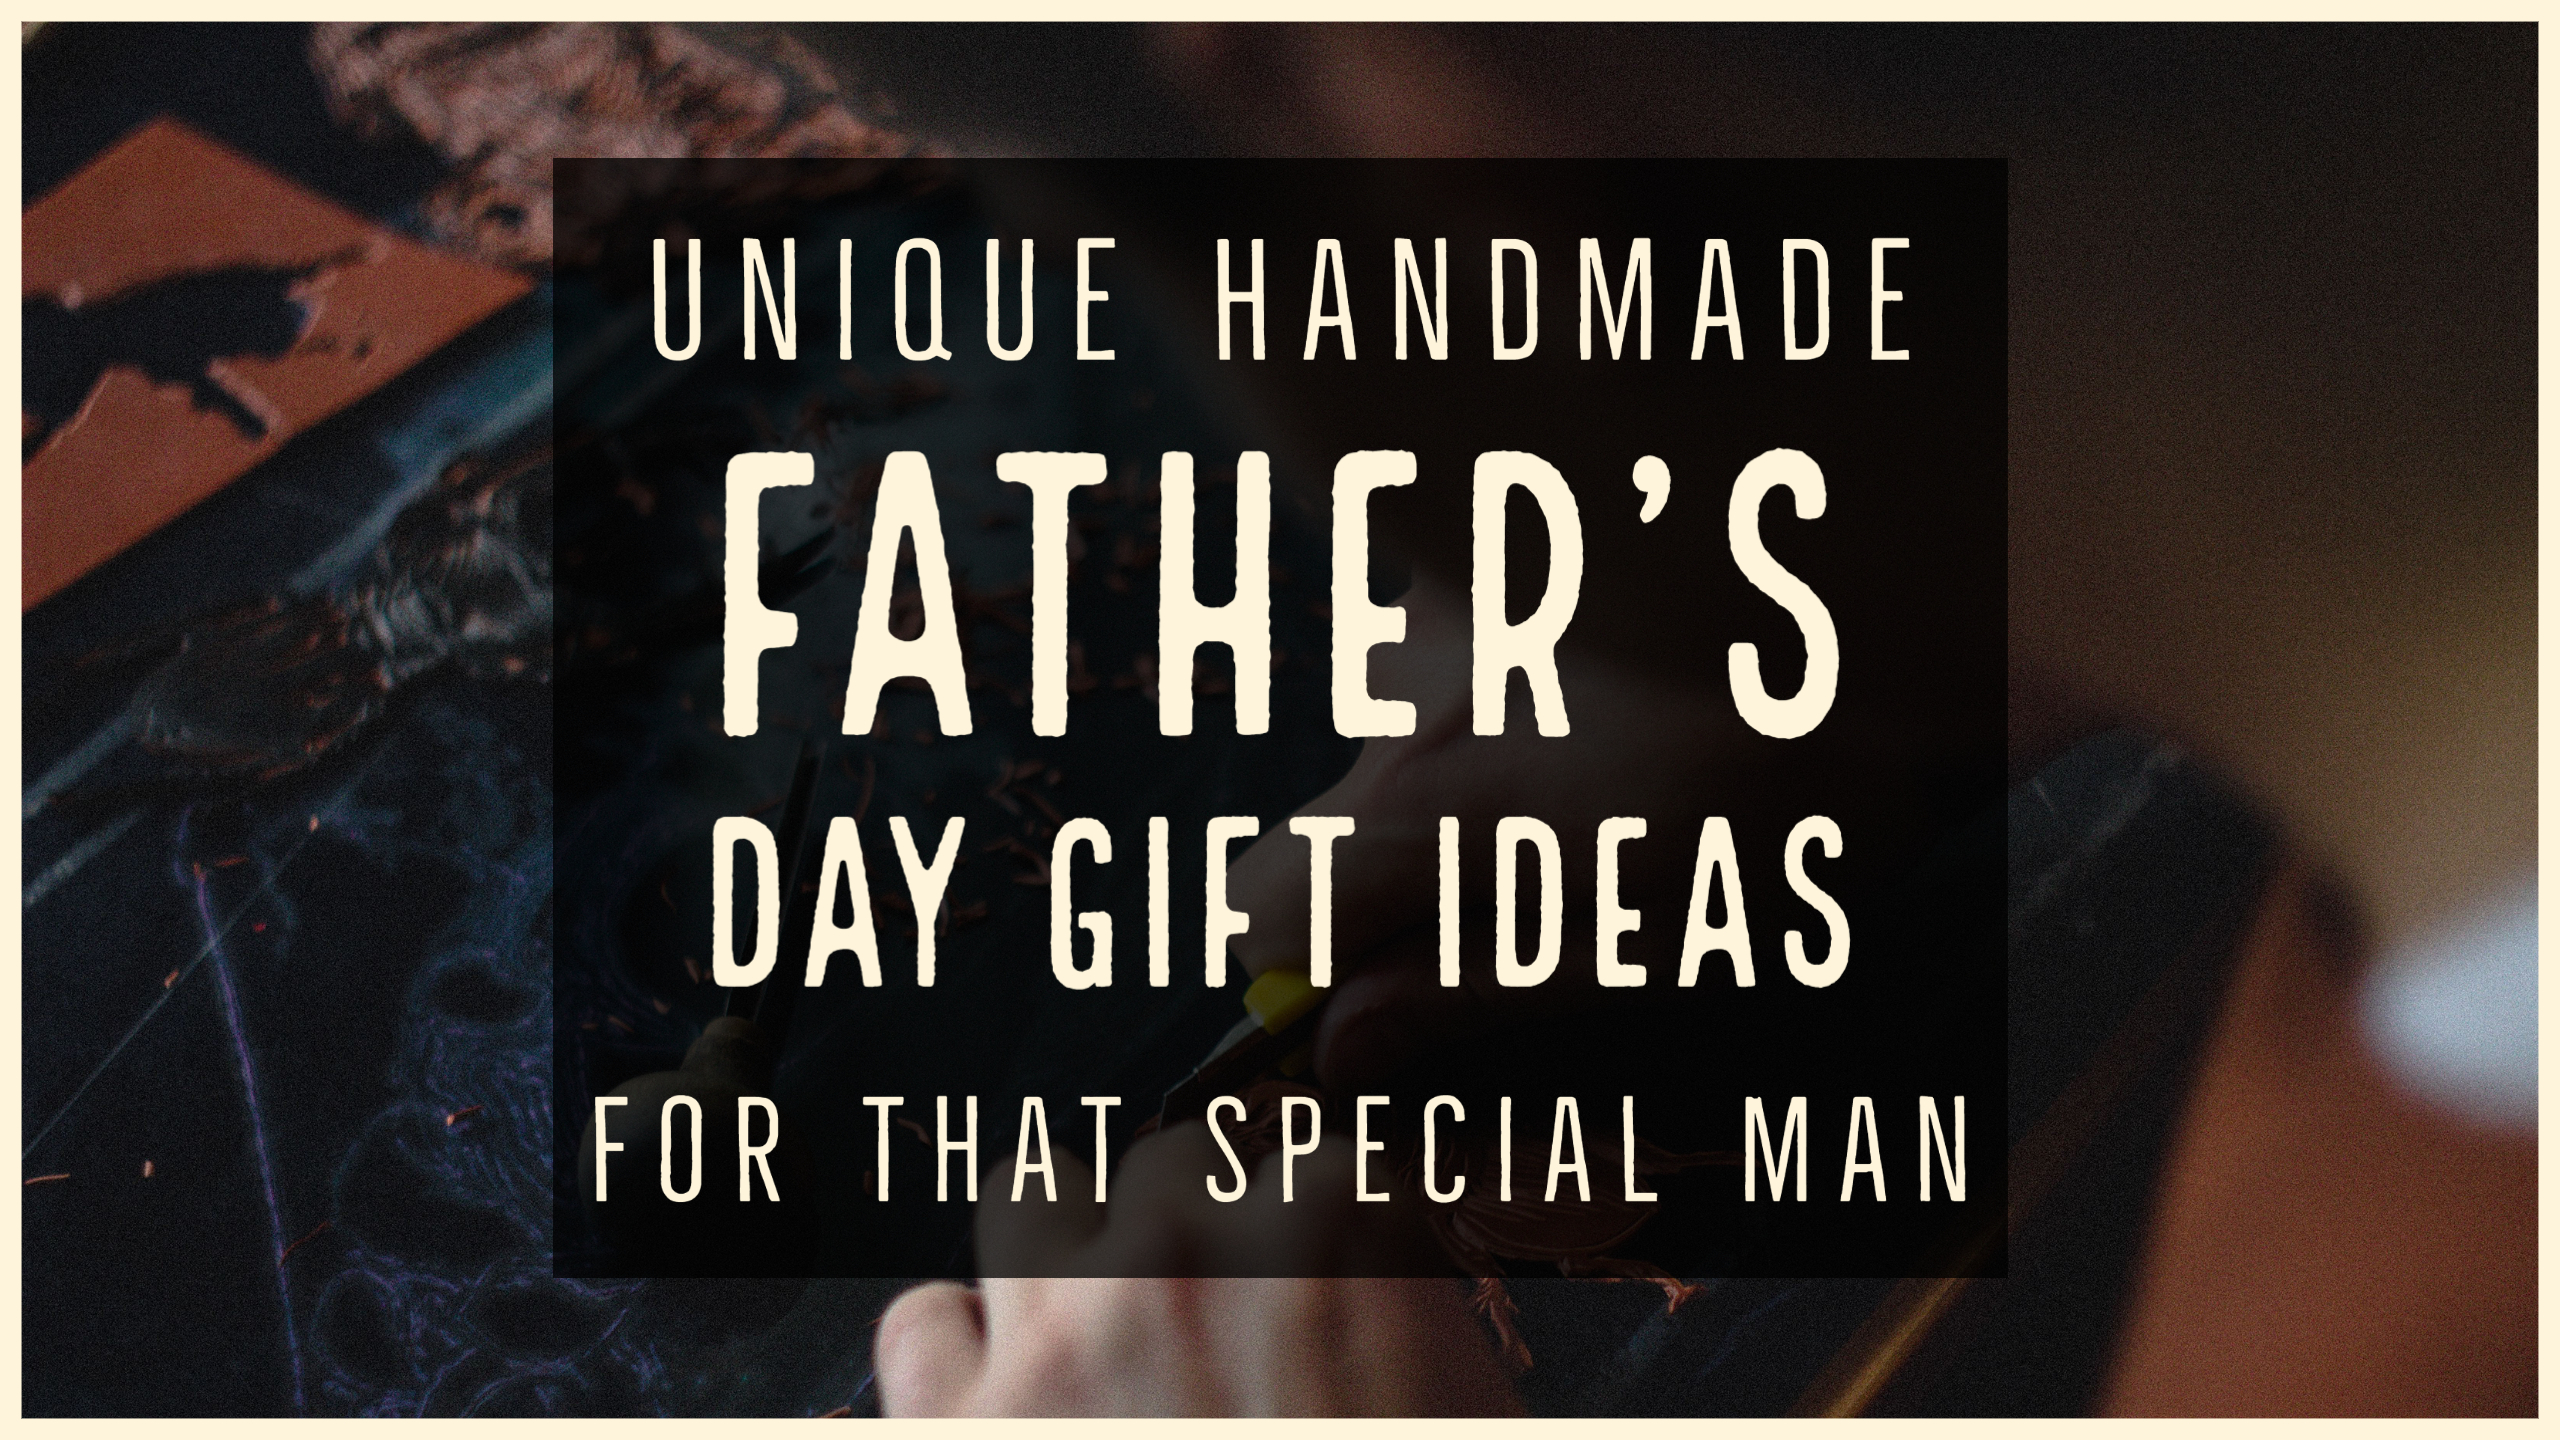 Unique Handmade Father's Day Gift Ideas Header